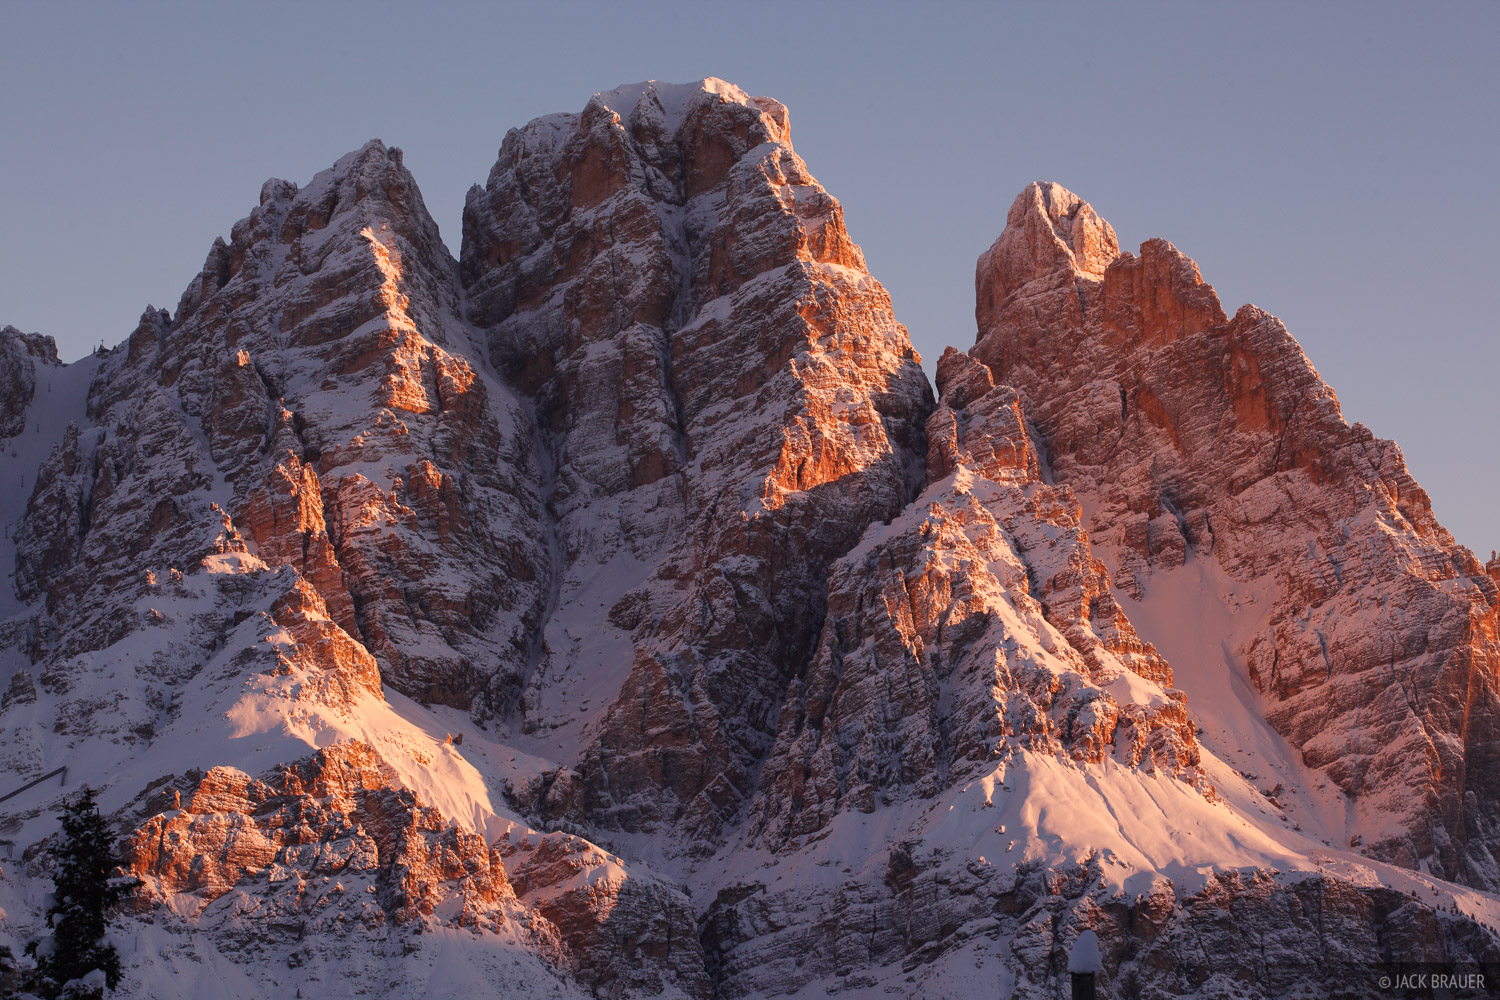 Cristallo, sunrise, Cortina, Dolomites, Italy, Alps, photo